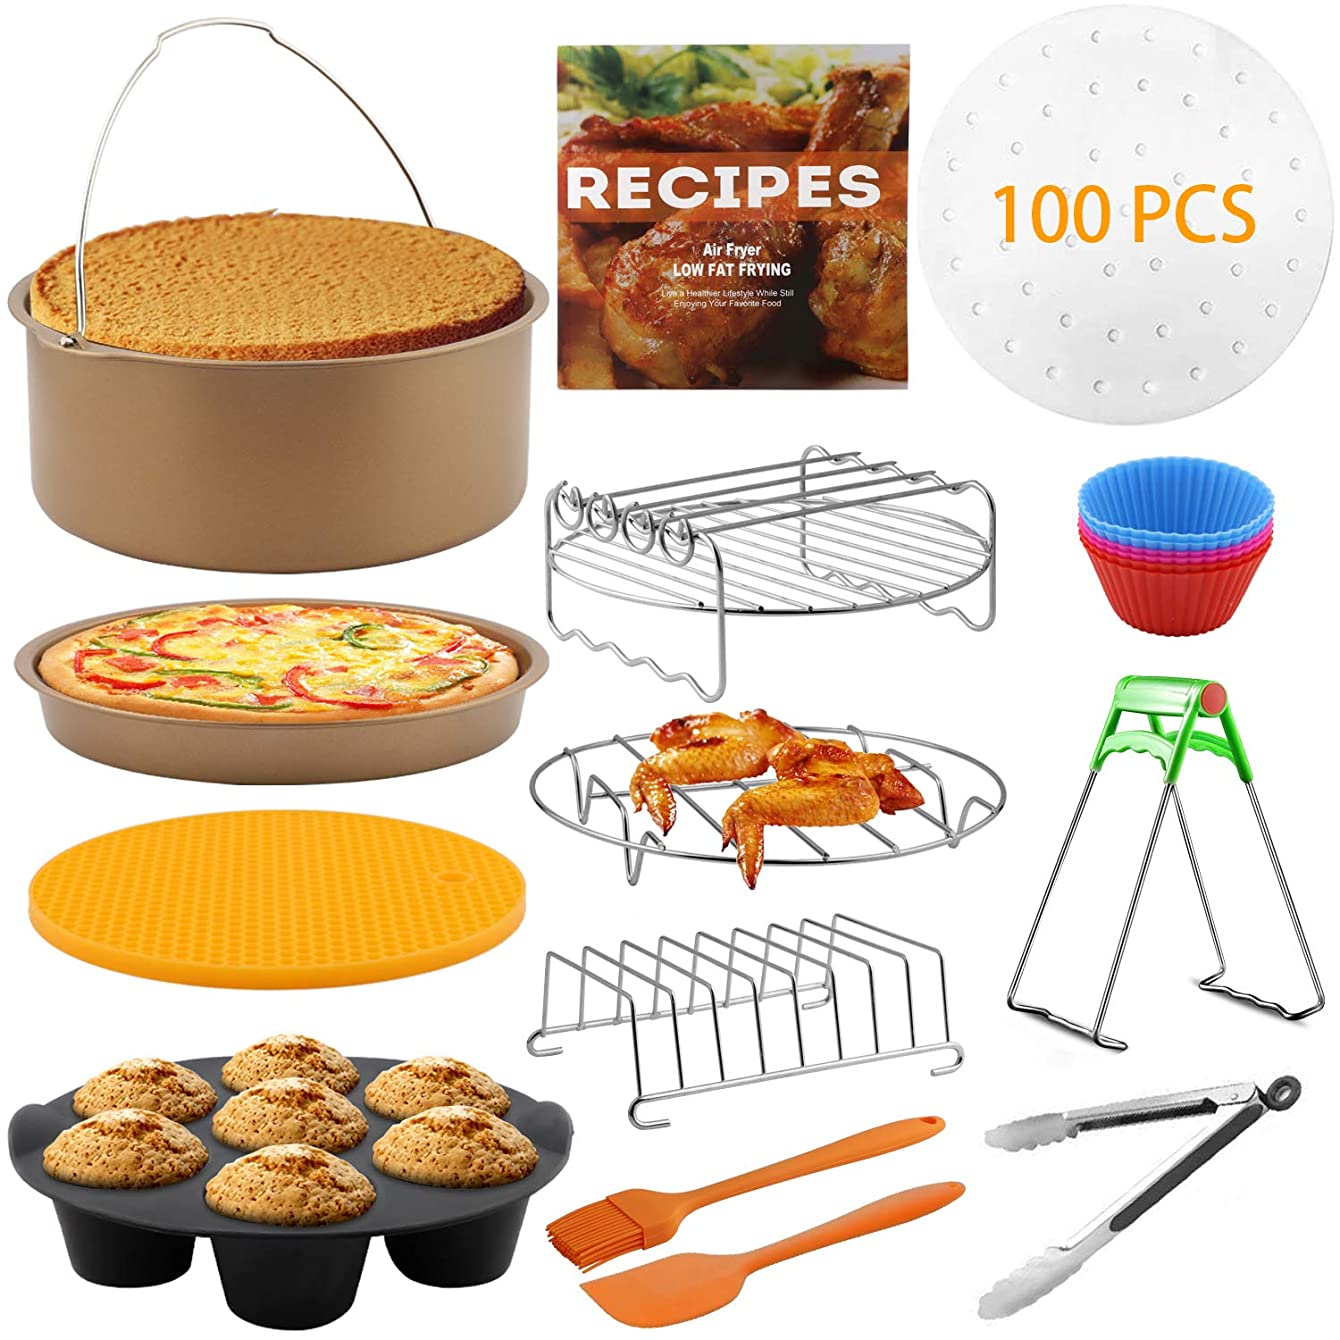 14 Pcs XL Air Fryer Accessories for Gowise Phillips Cozyna Ninja 4.2/4.5/5.5/5.8/6.5 QT with Recipe Cookbook, Rust Proof 8'' Cake Barrel, Pizza Pan, 9'' Air Fryer Liners, Silicone Oil Brush?